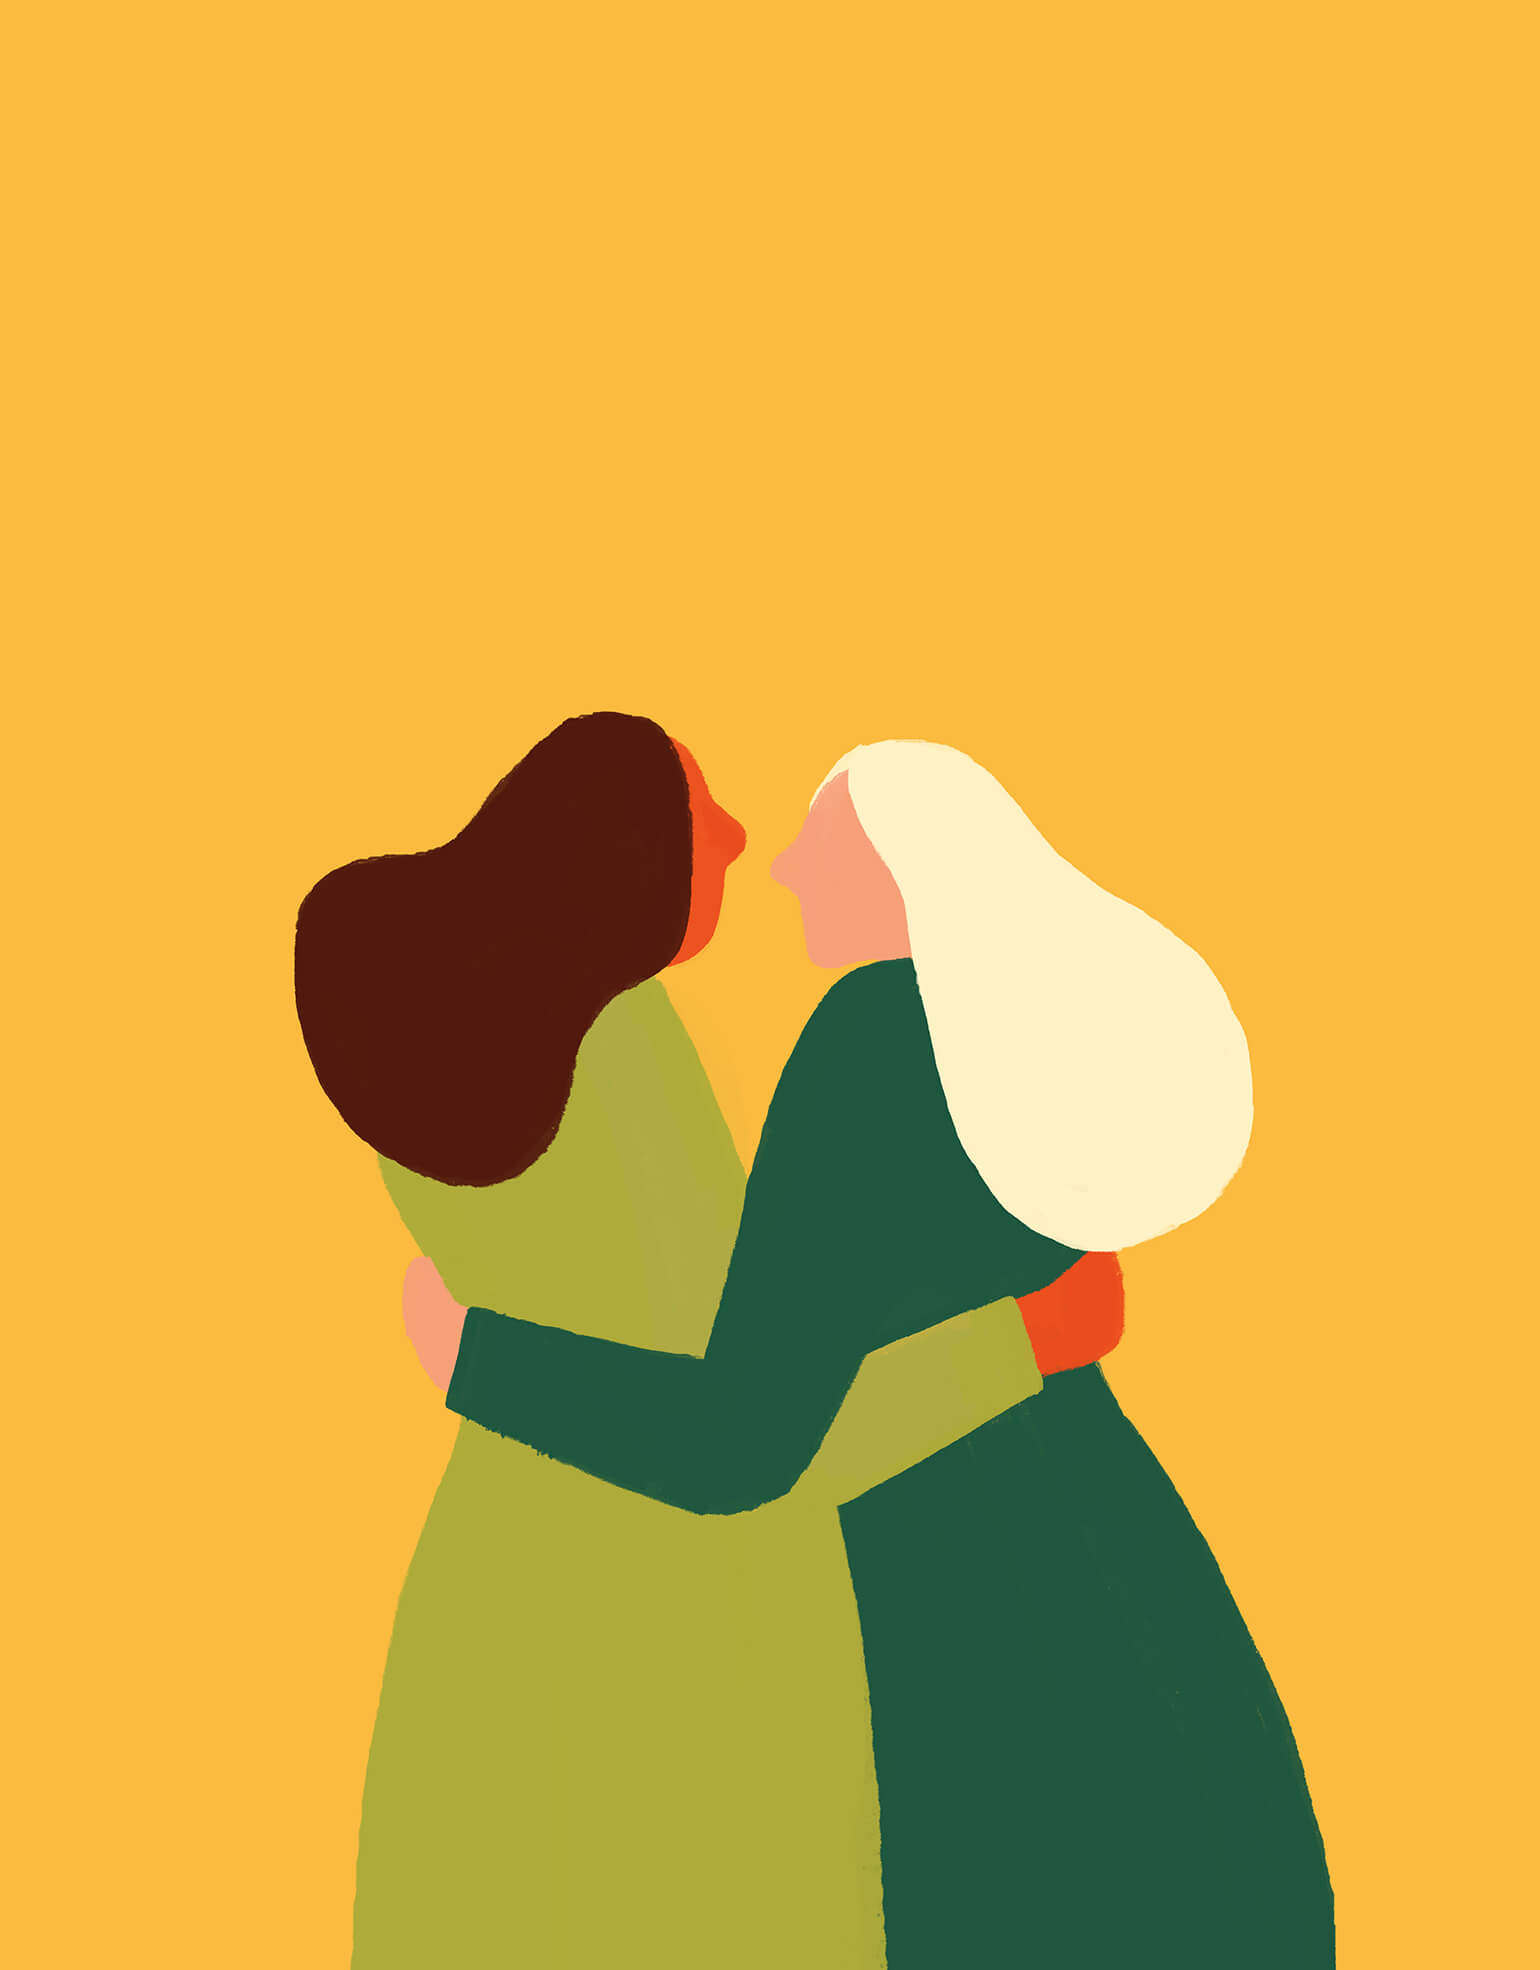 women-in-love-queer-lesbian-illustration-violeta-noy